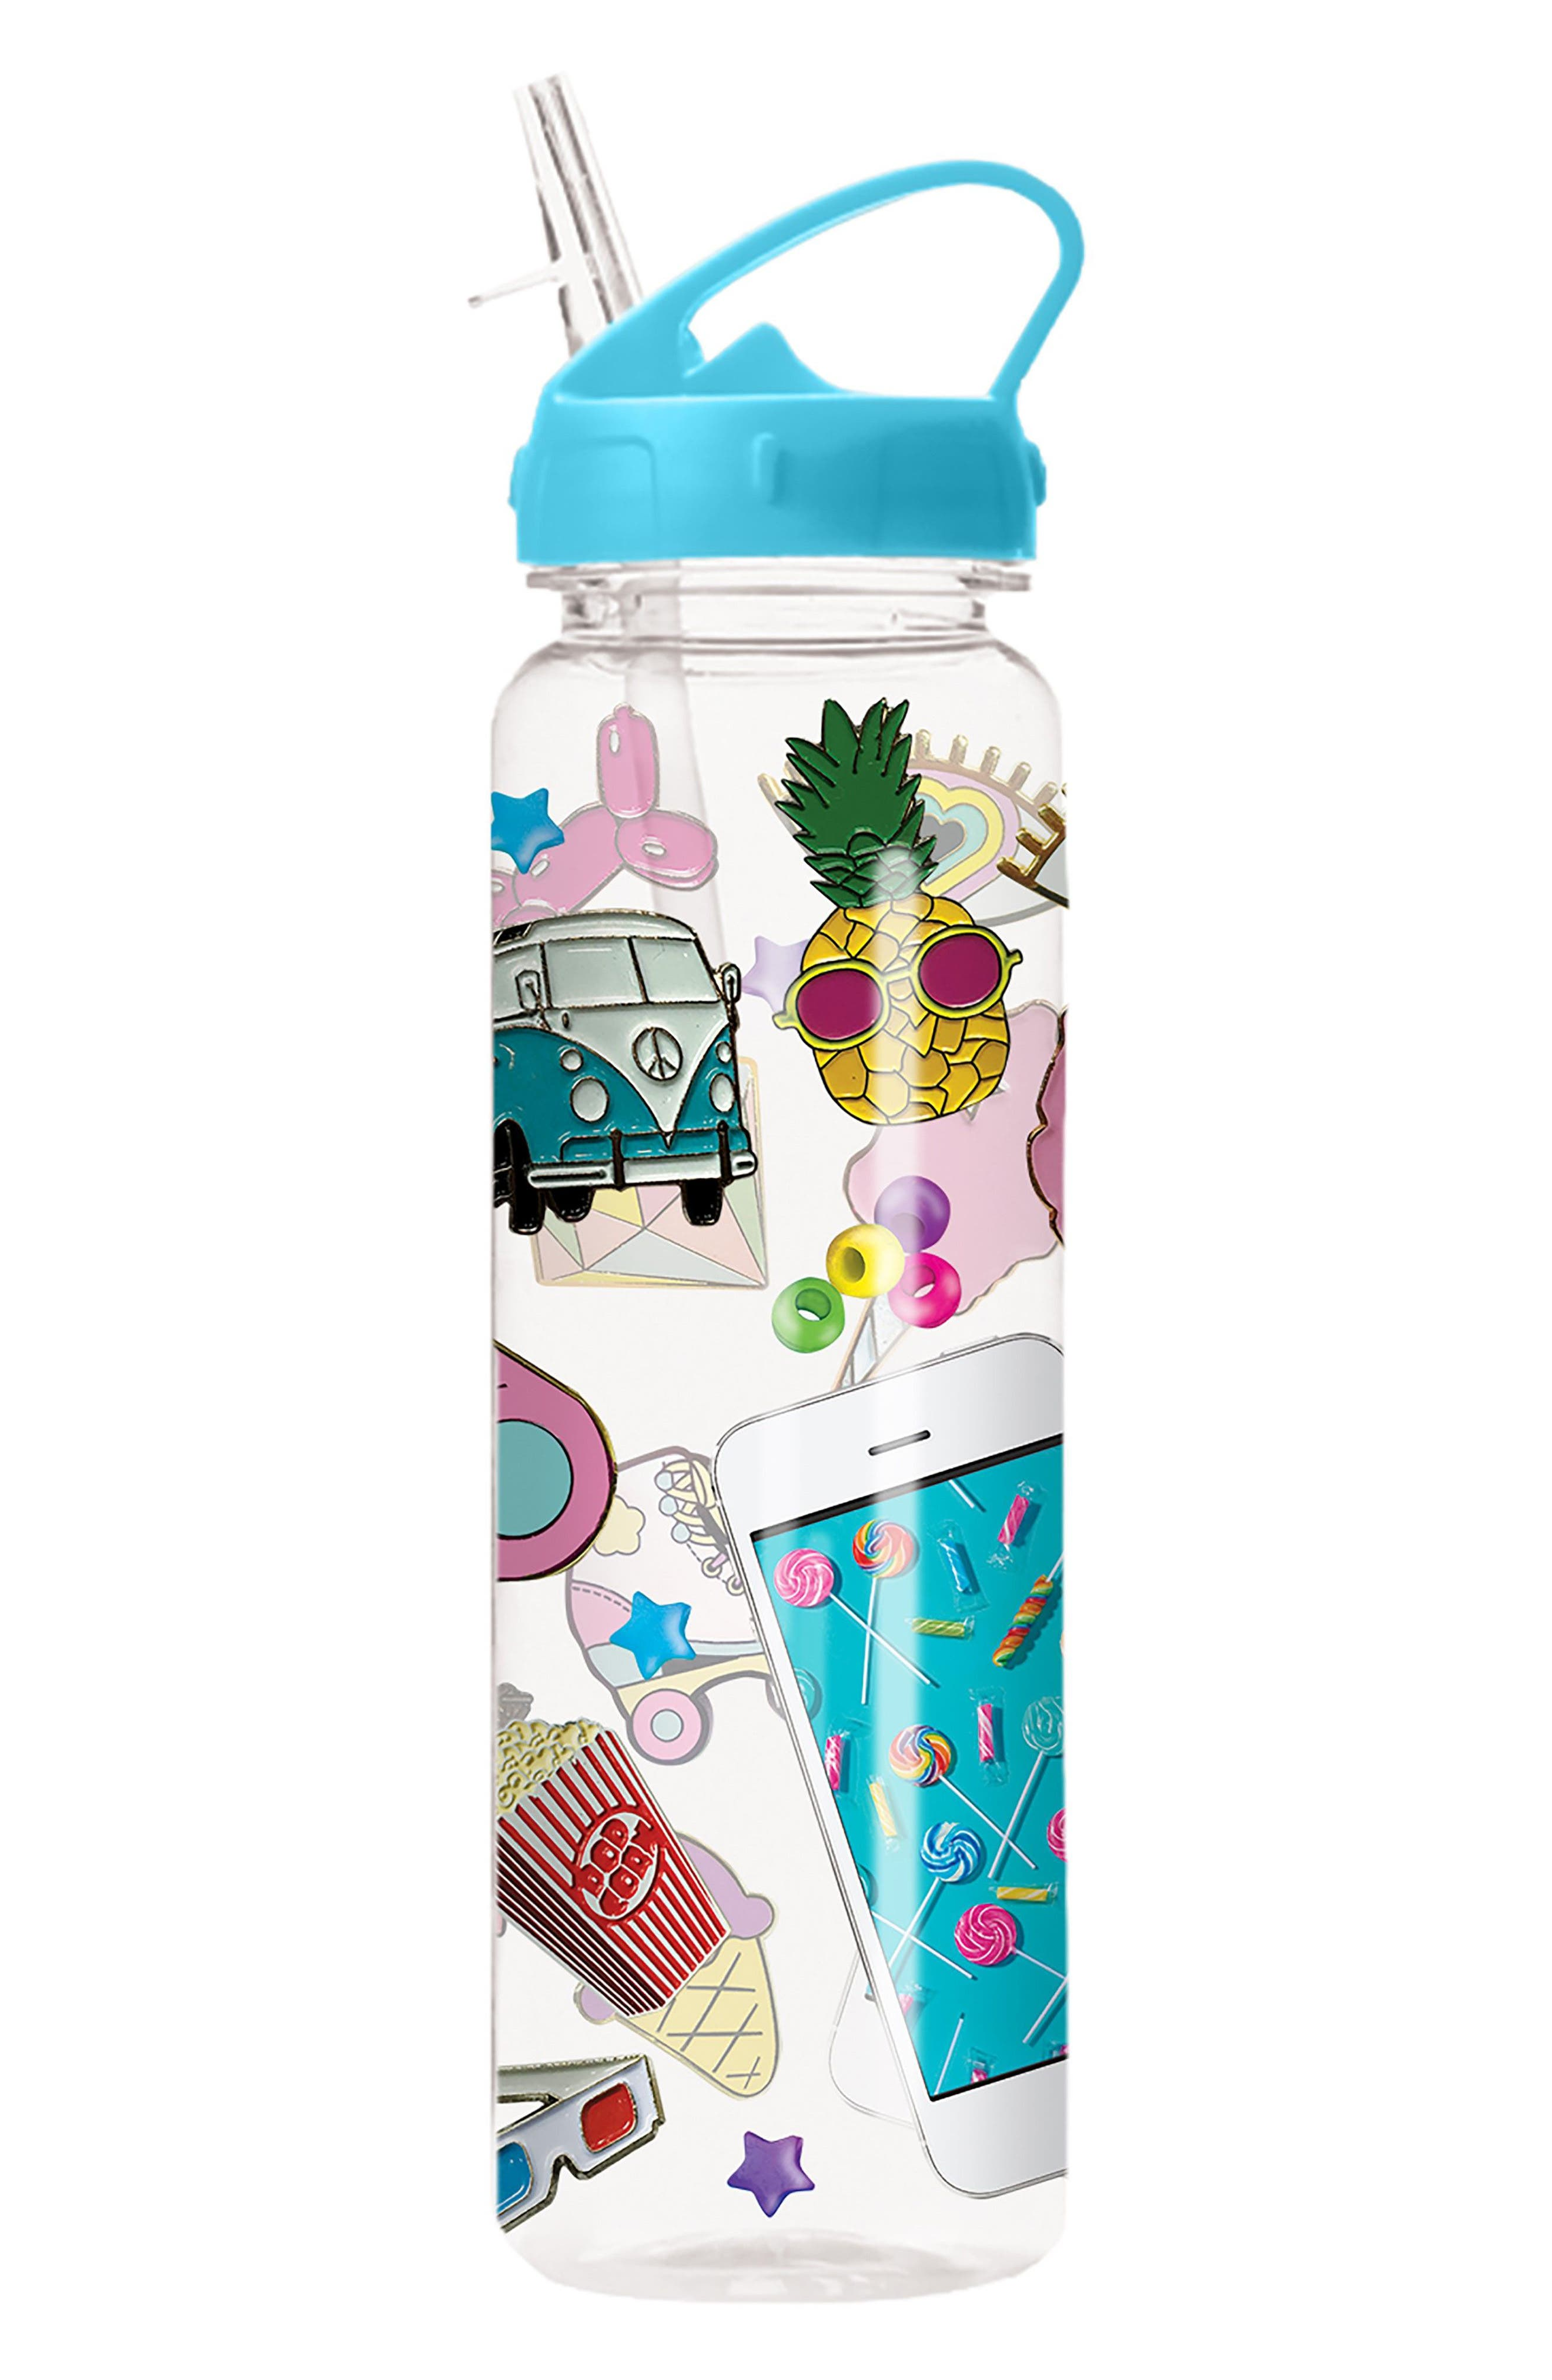 Iscream Flair Water Bottle